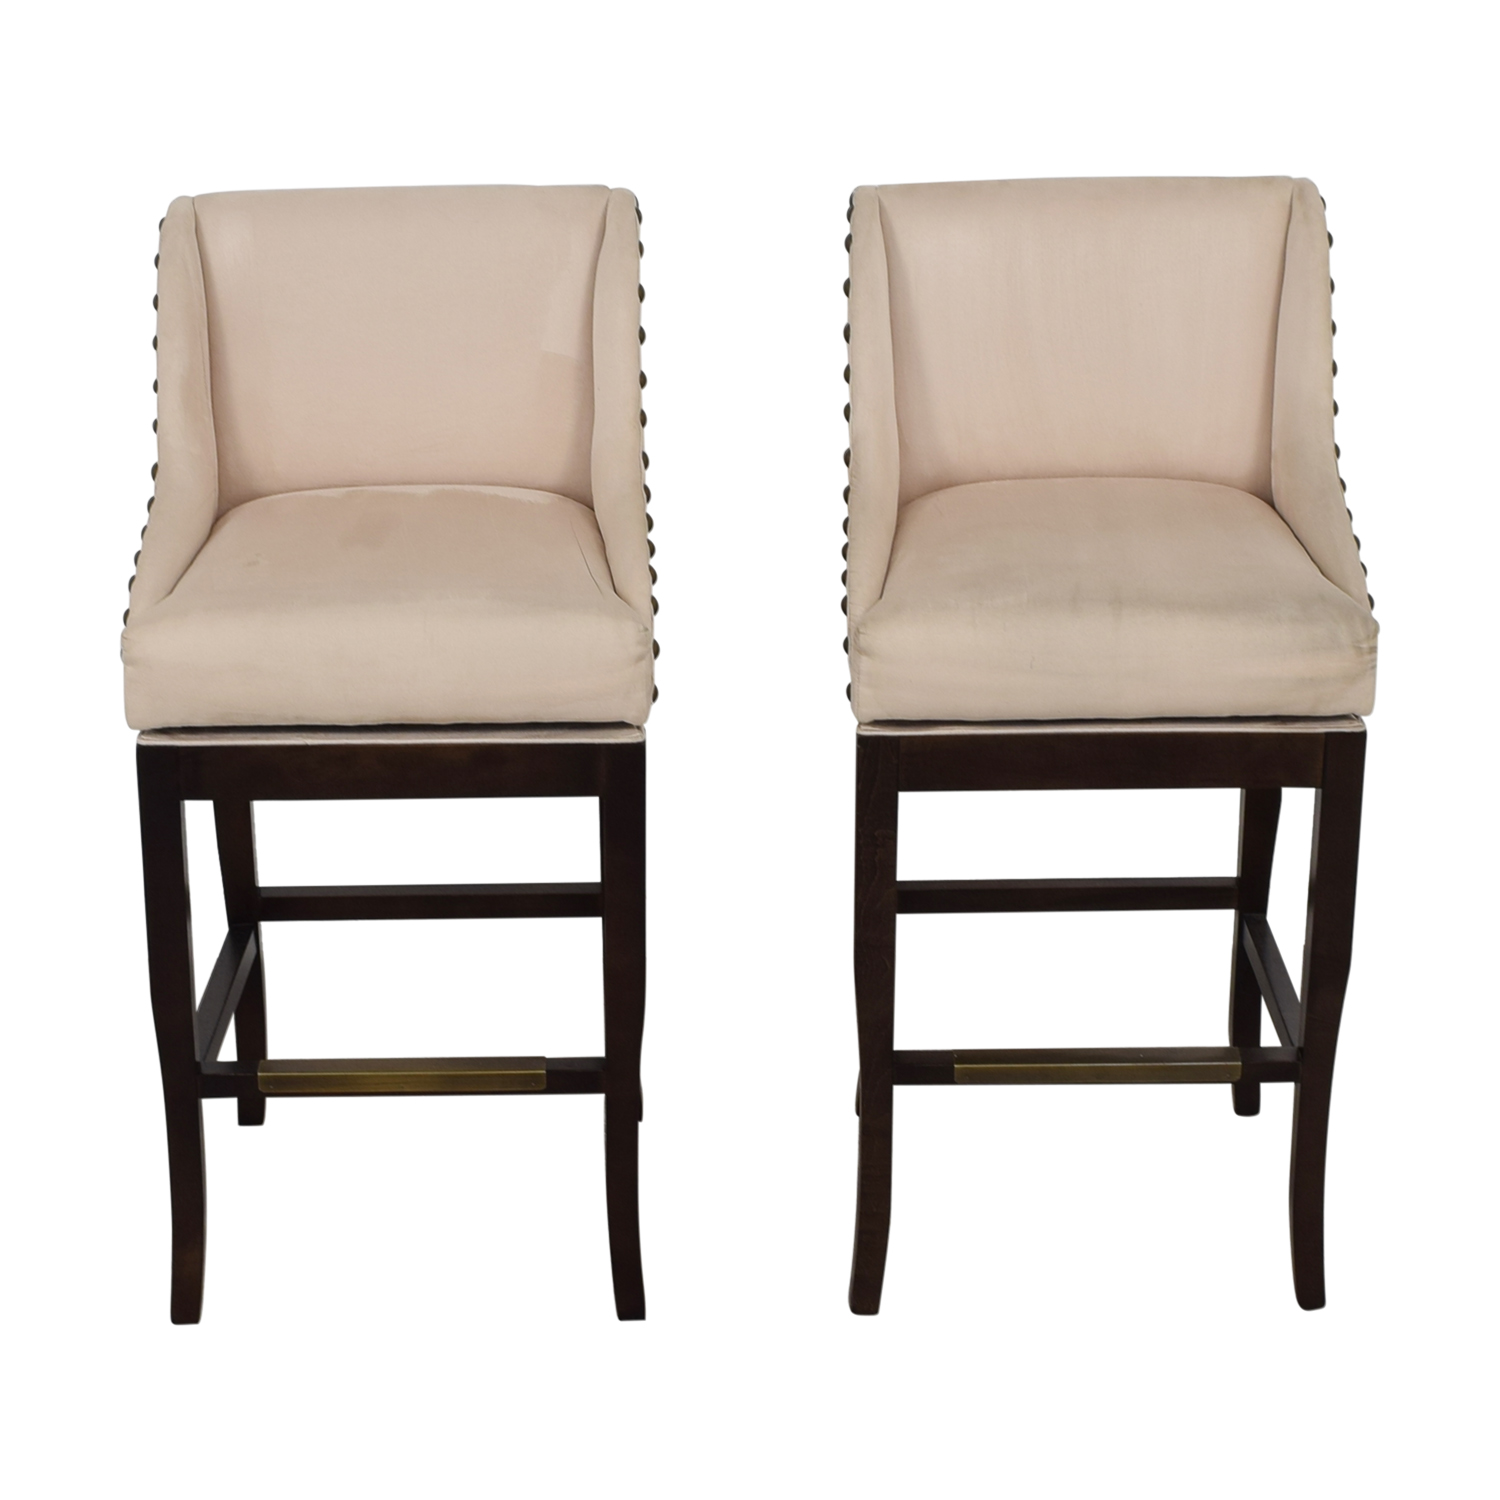 Ballard Designs Ballard Designs Marcello Beige Nailhead Bar Stools second hand